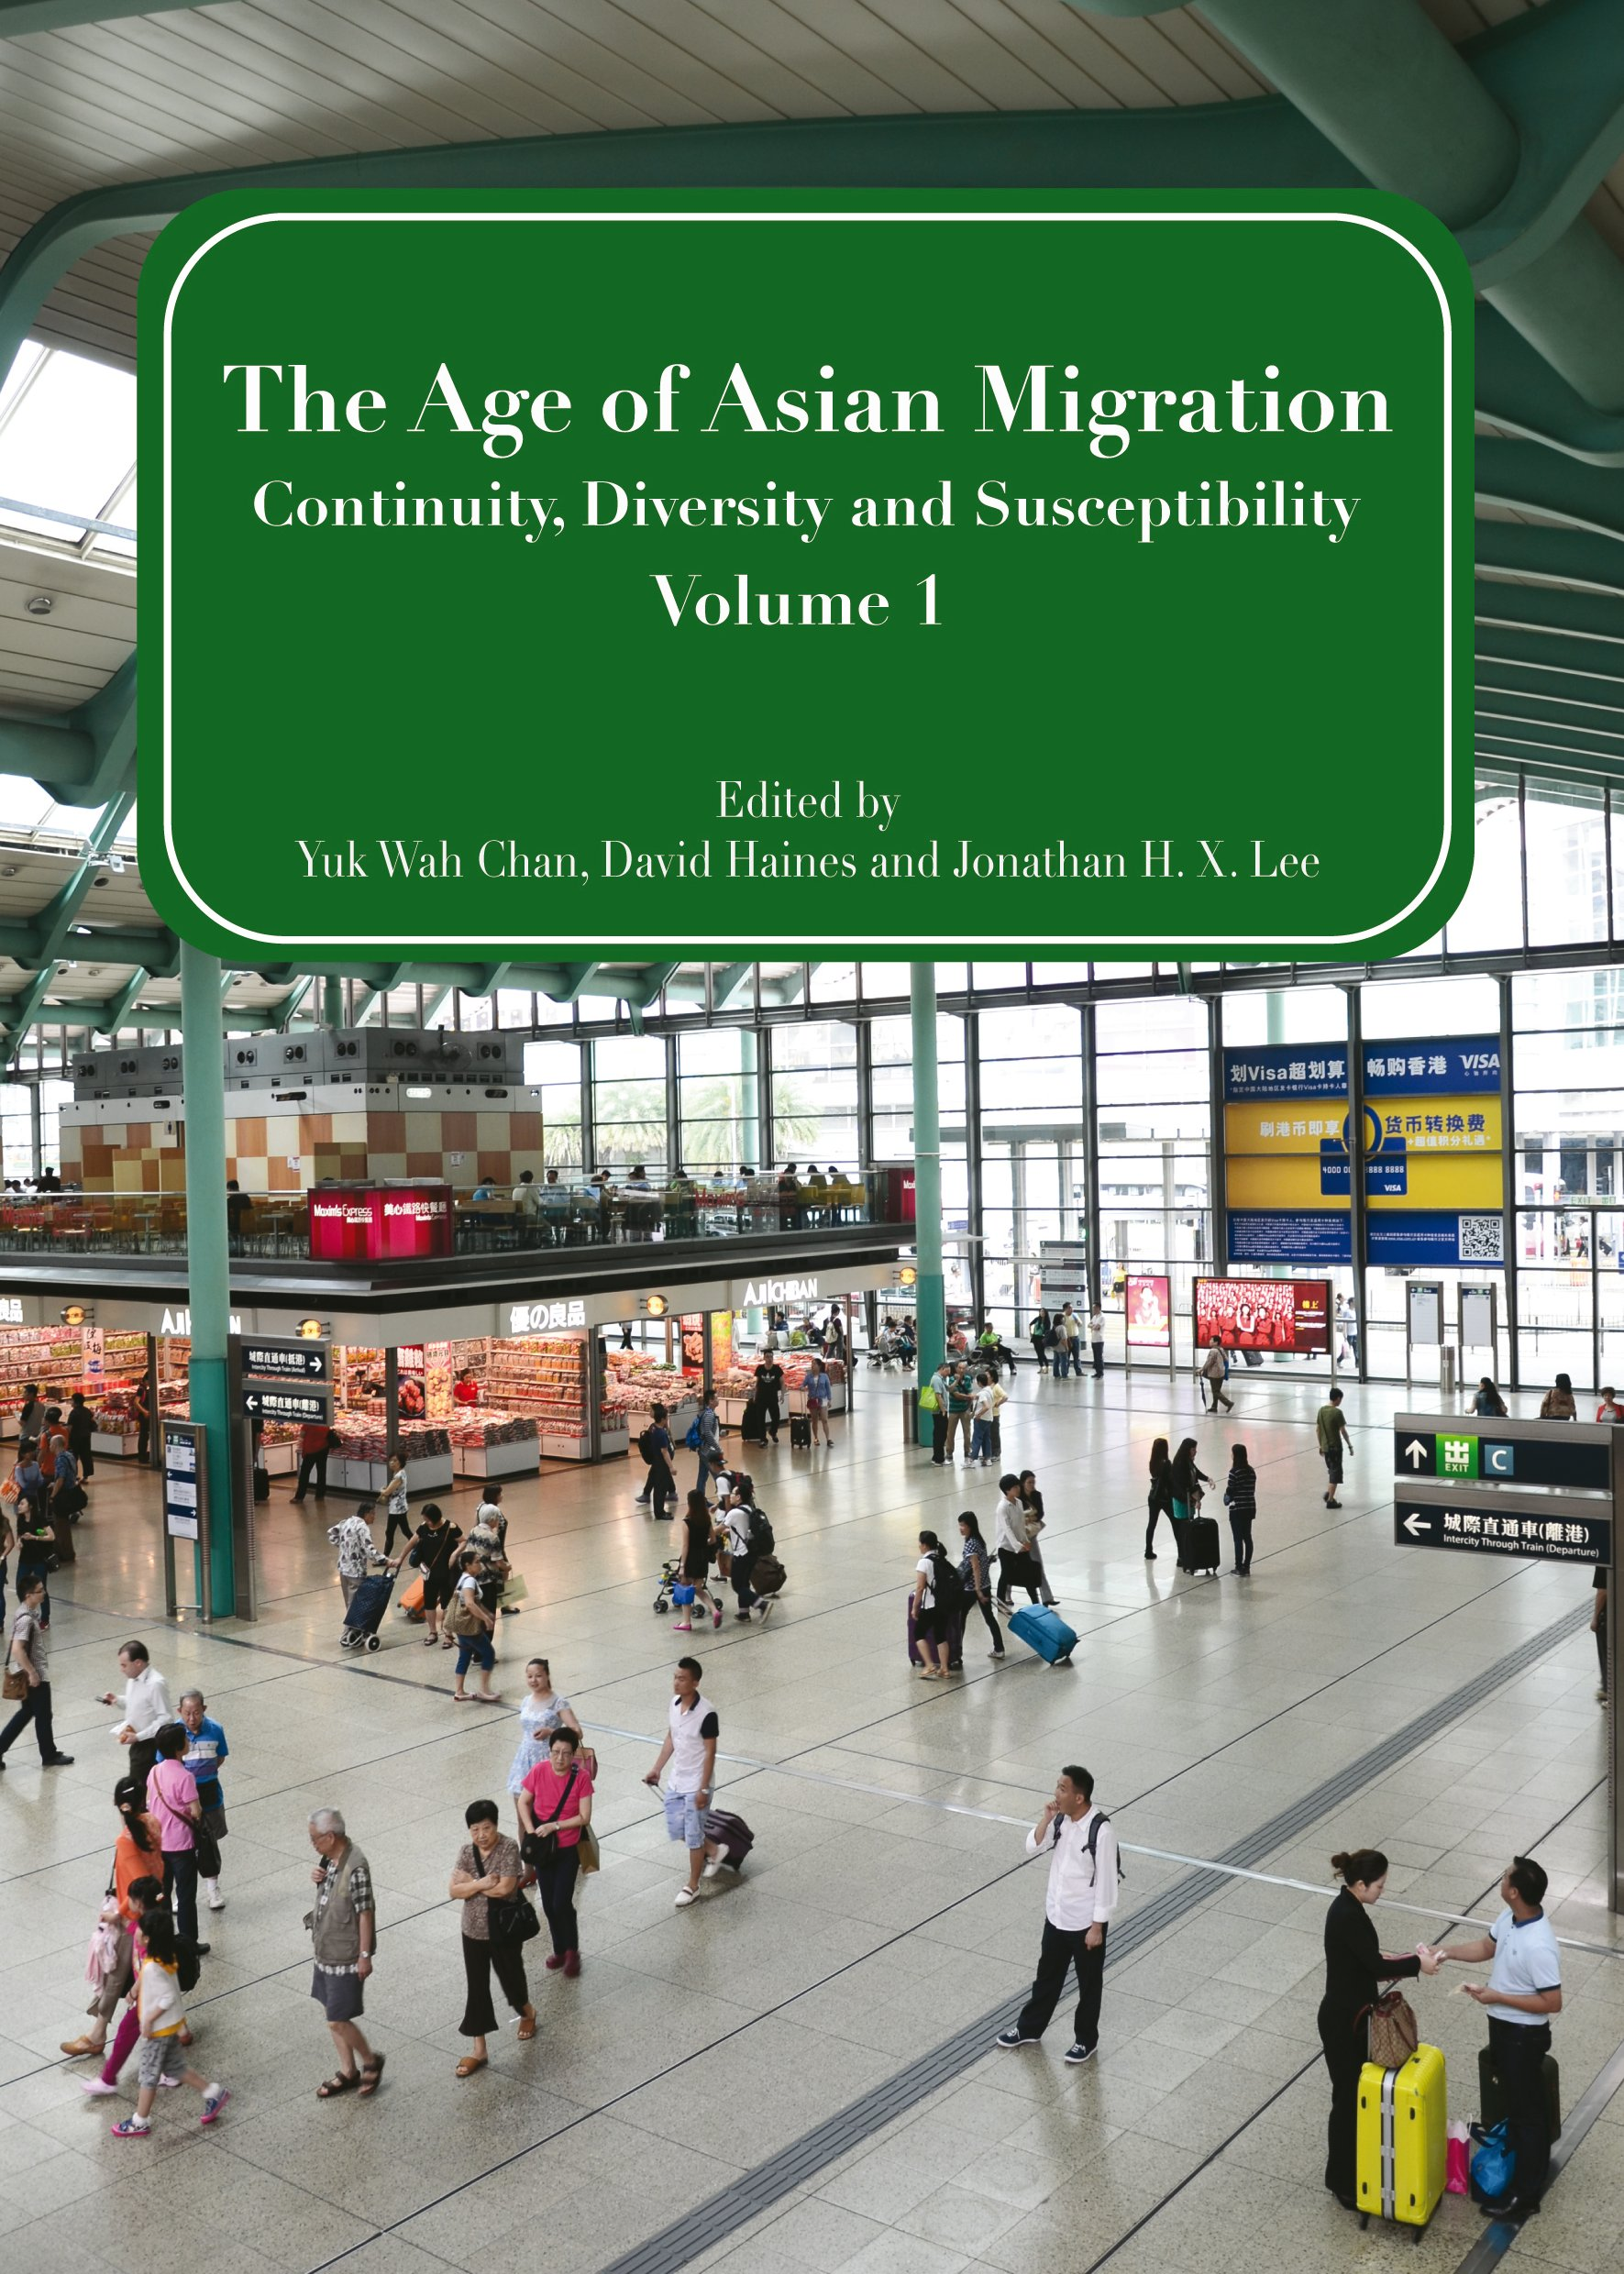 The Age of Asian Migration: Continuity, Diversity, and Susceptibility Volume 1